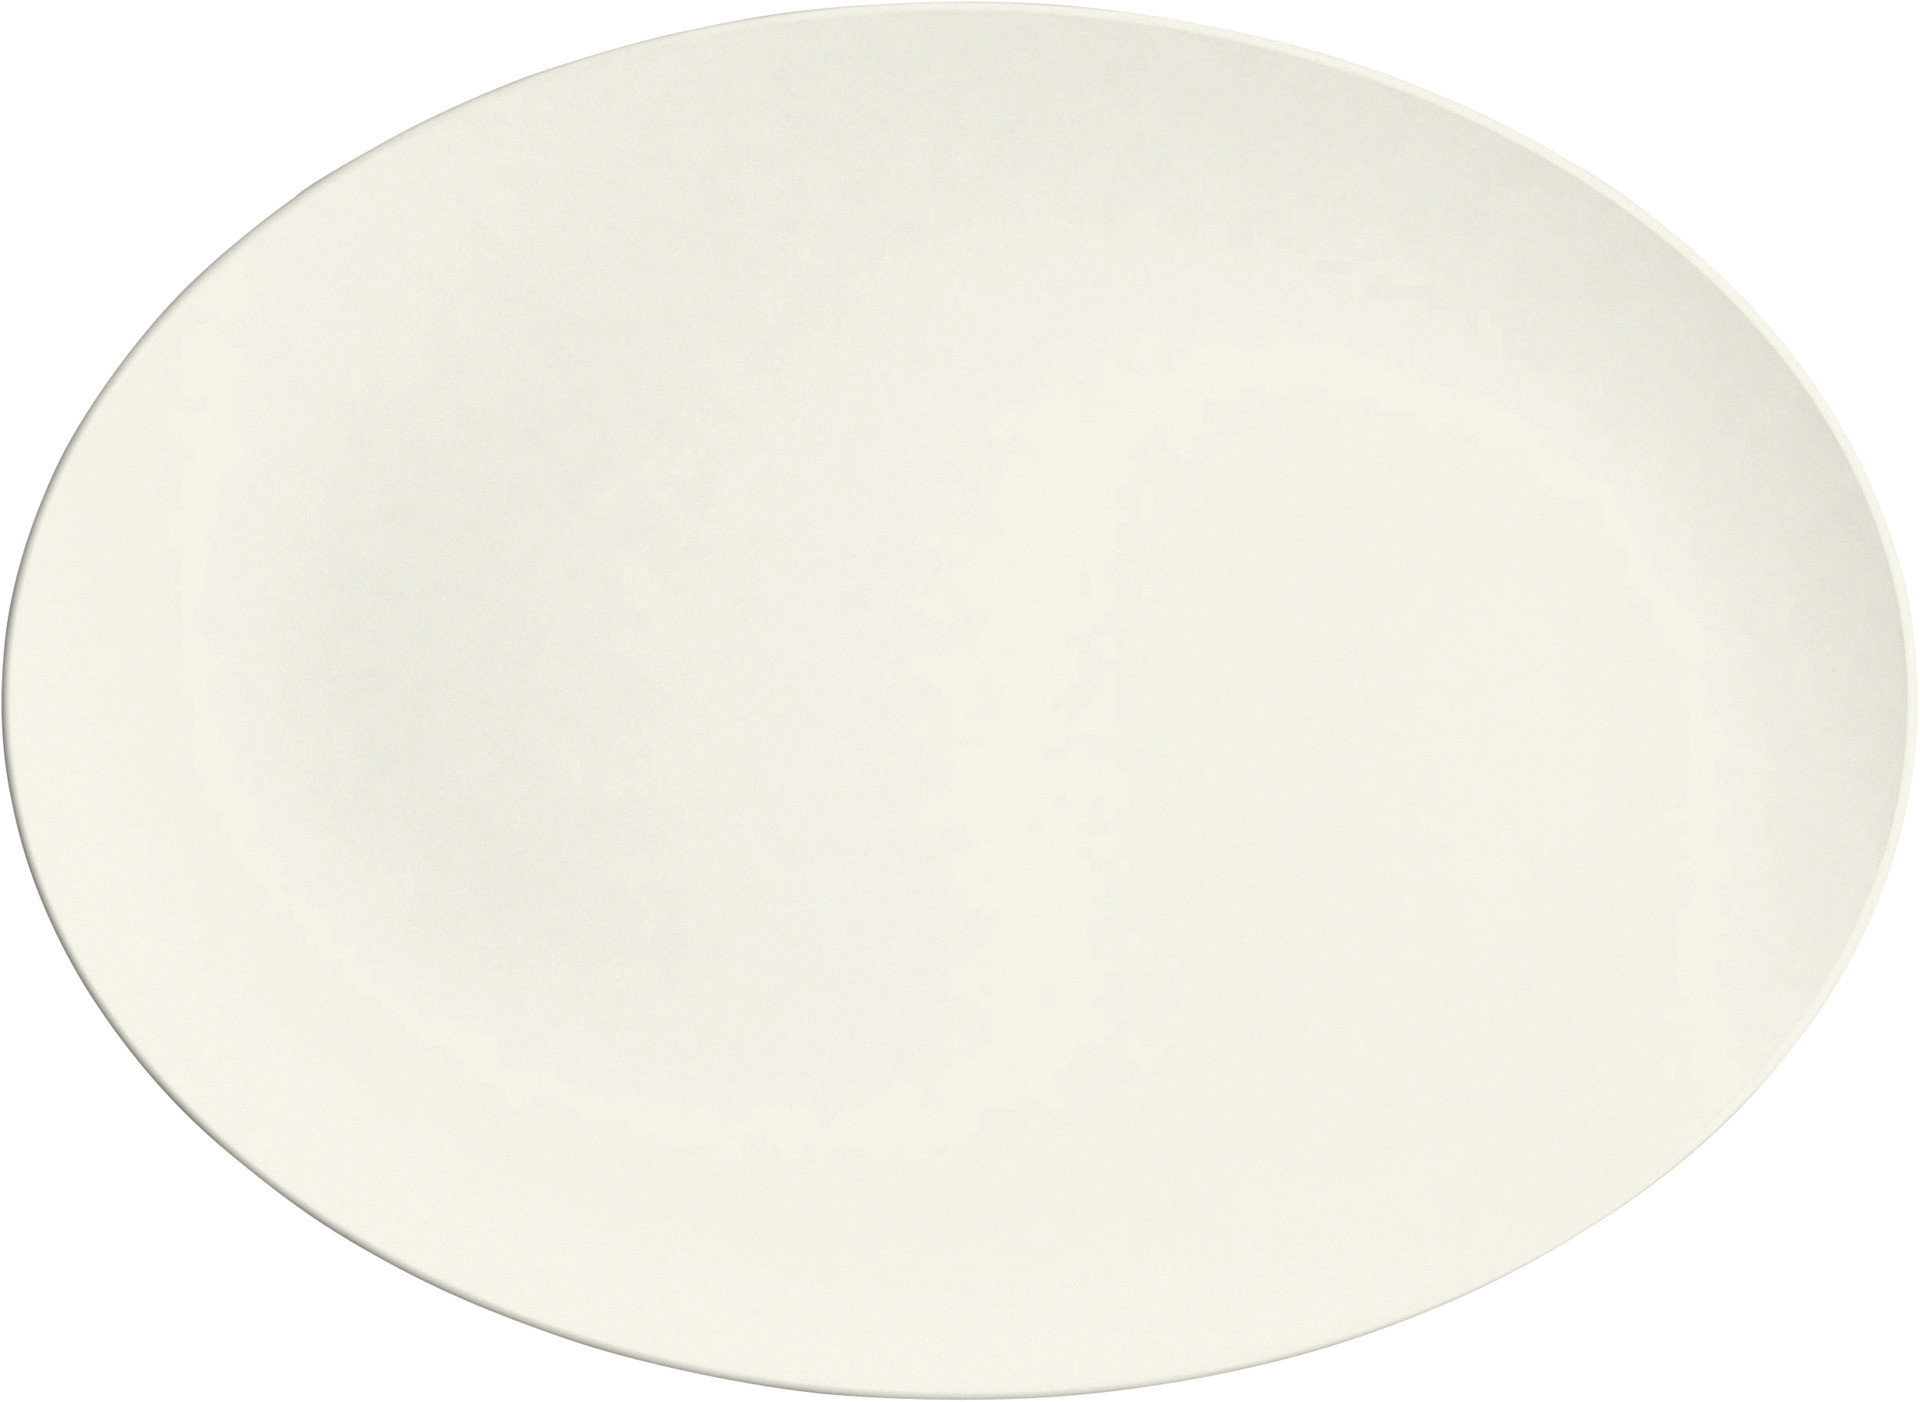 Purity, Coupplatte oval 370 x 270 mm